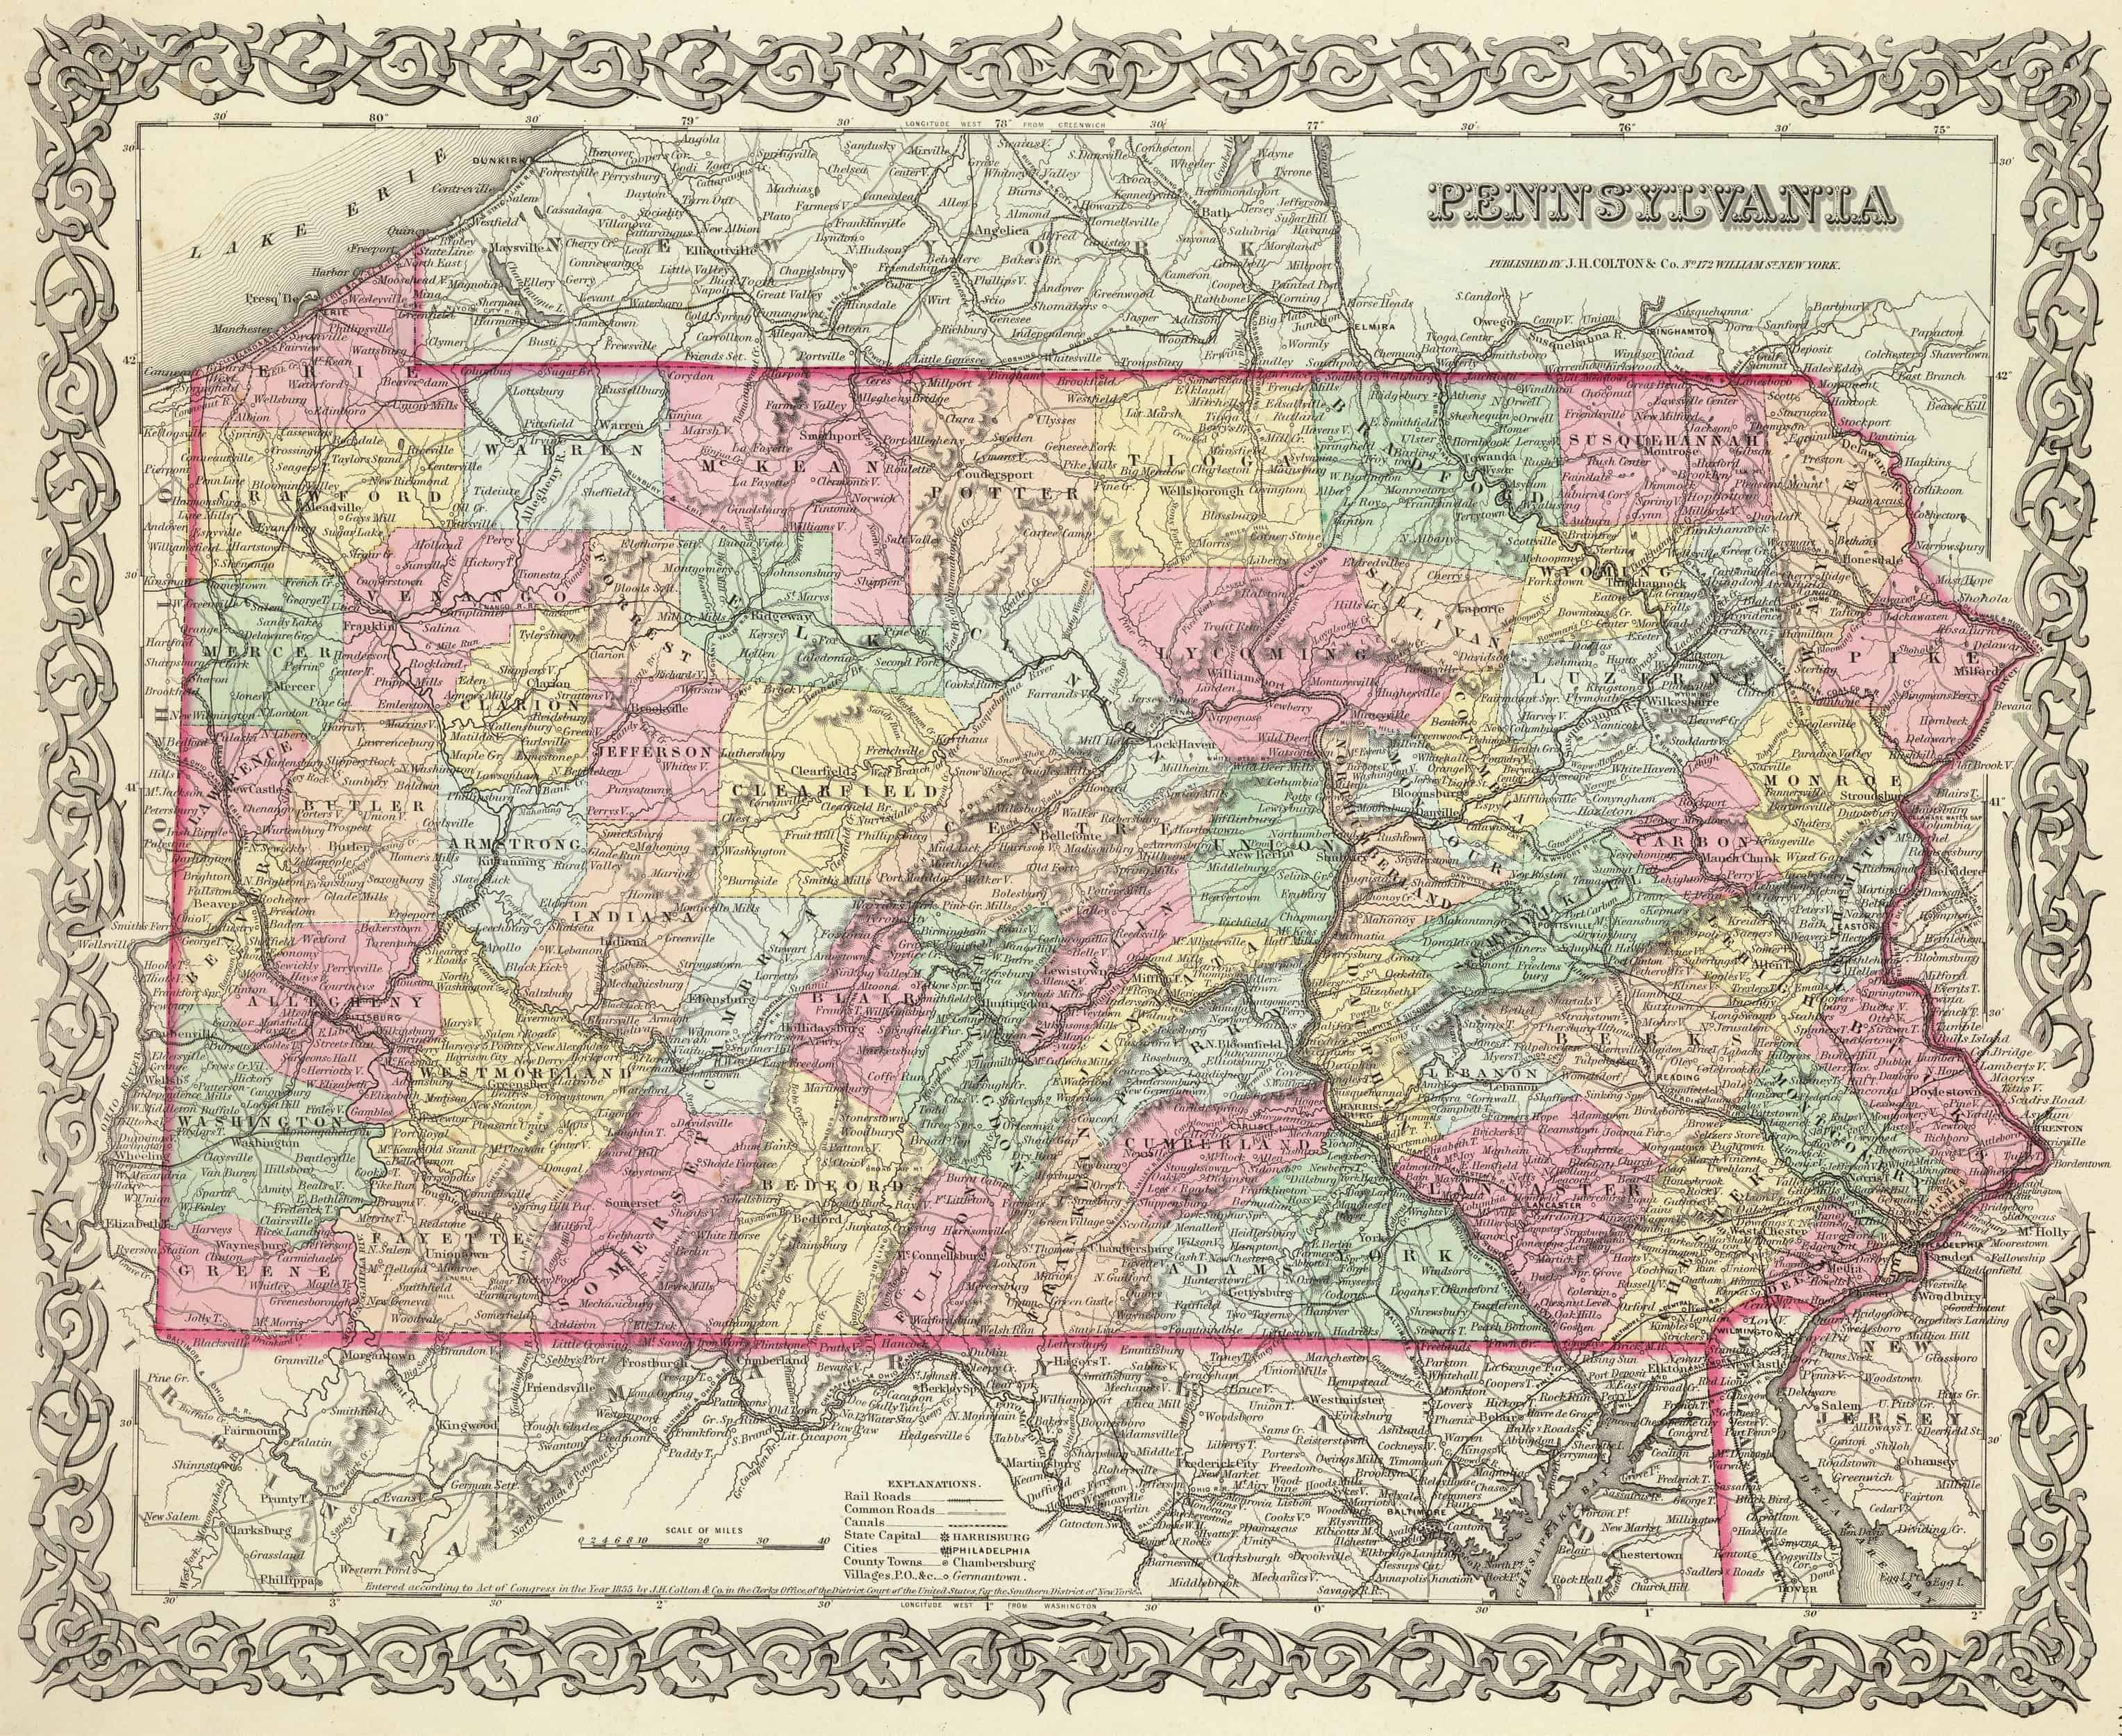 Old Historical City, County and State Maps of Pennsylvania ... on map of route 322 pennsylvania, map of pennsylvania with cities, map of southern pennsylvania, map of route 30 pennsylvania, map of route 78 pennsylvania, map of route 80 pennsylvania,